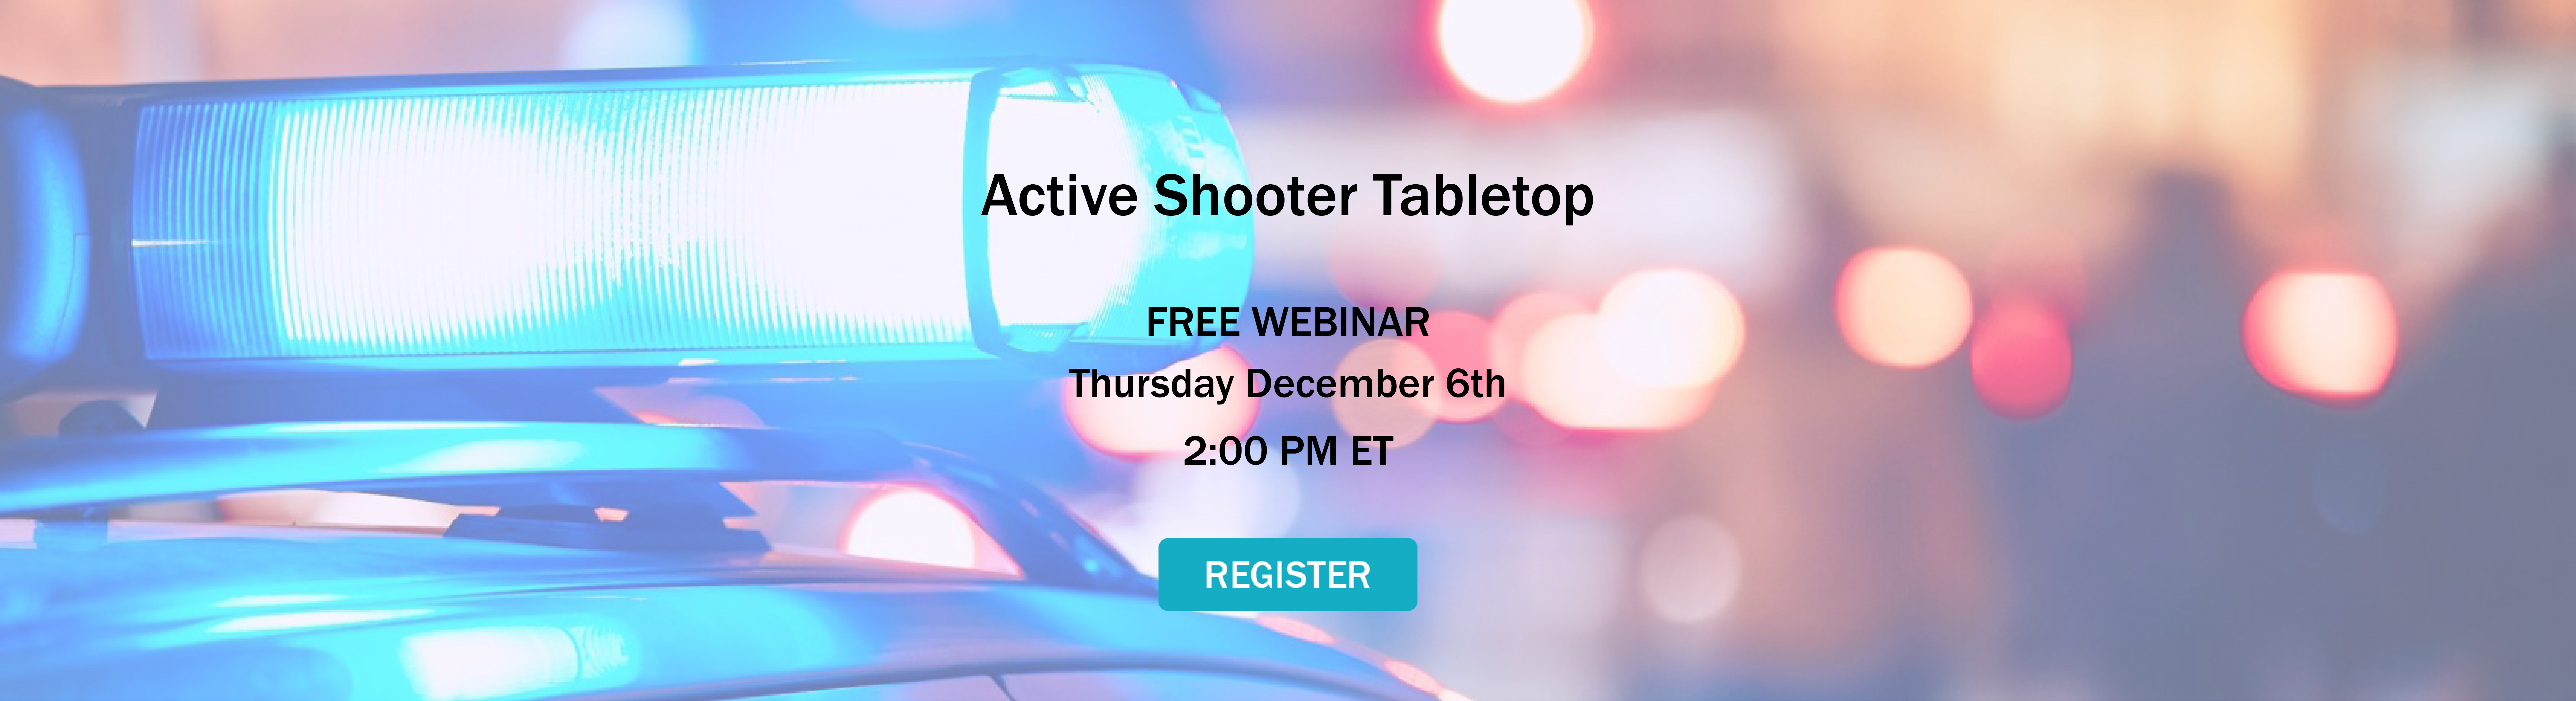 Active-Shooter-TT-Webinar-Hero-Image-Dec-2018